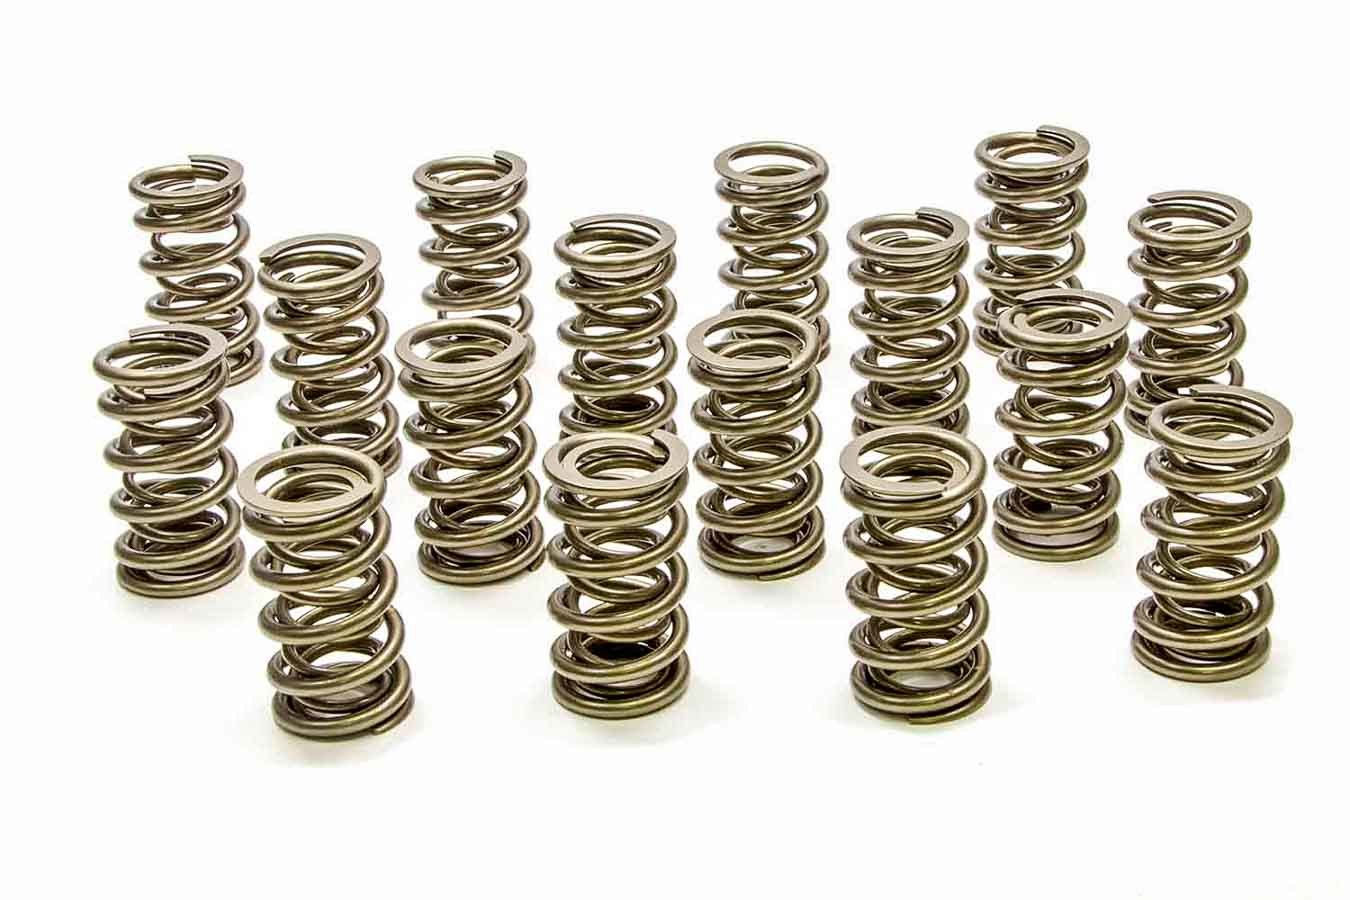 PAC Racing Springs PAC-1206X Valve Spring, RPM Series, Dual Spring, 409 lb/in Spring Rate, 1.000 in Coil Bind, 1.290 in OD, GM LS-Series, Set of 16